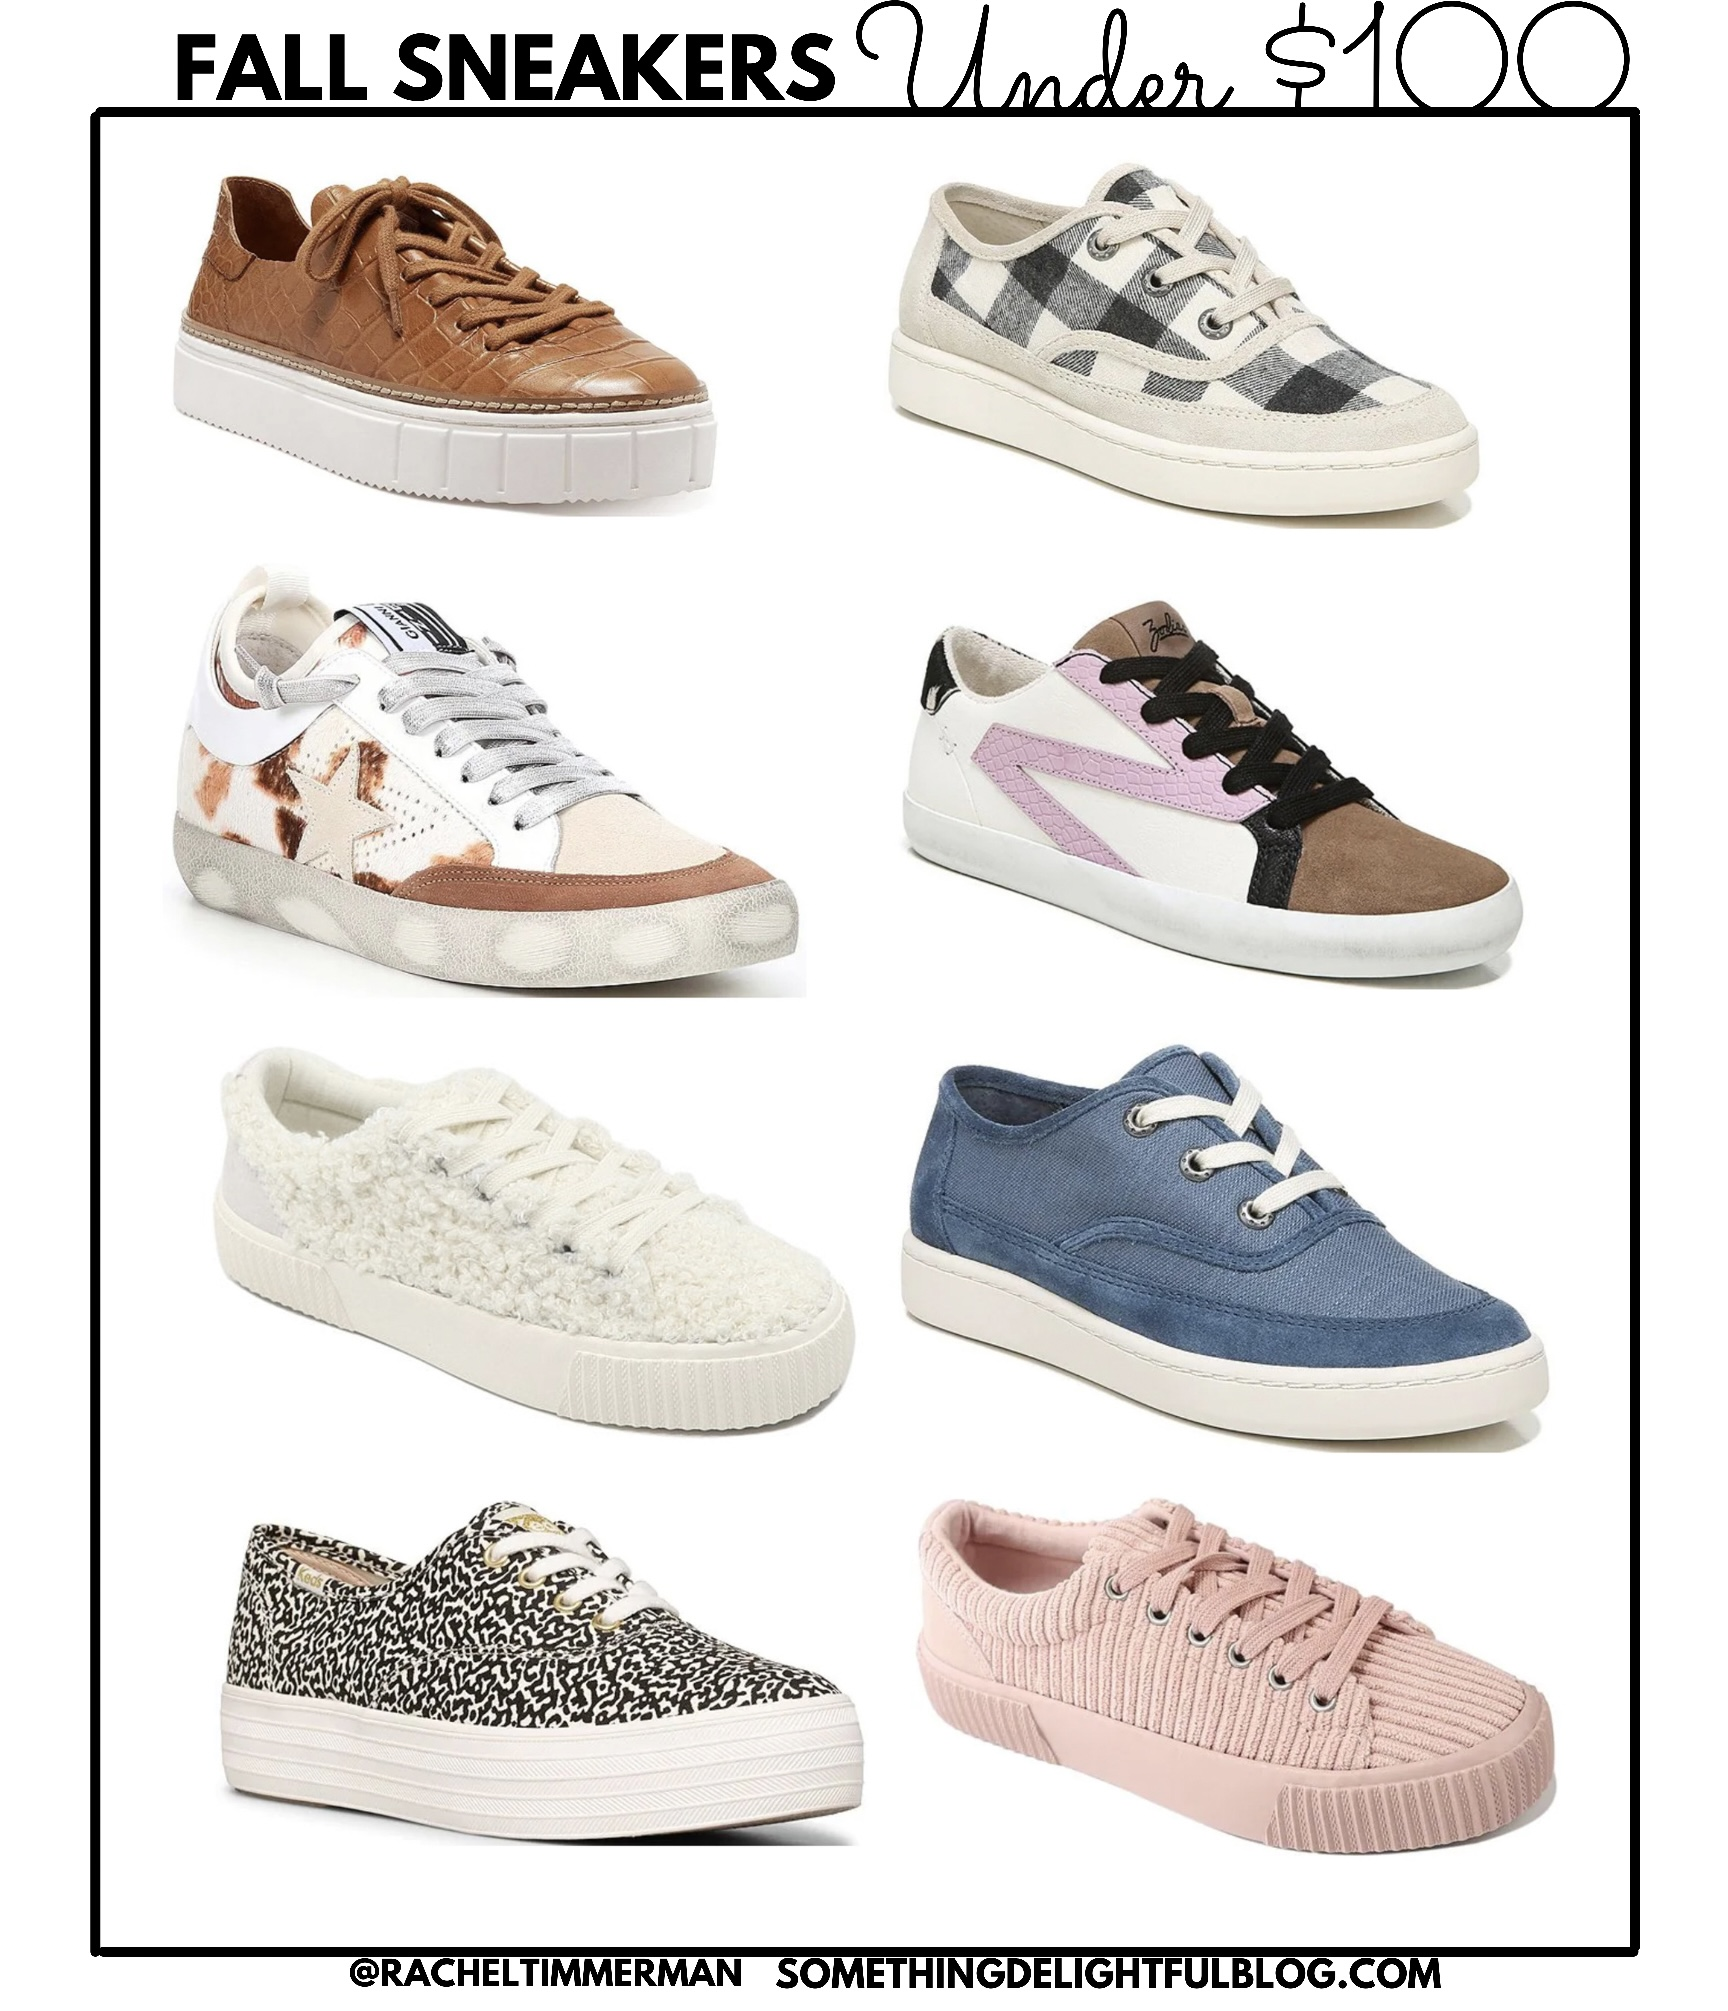 Fall Sneakers under $100 - Something Delightful Blog